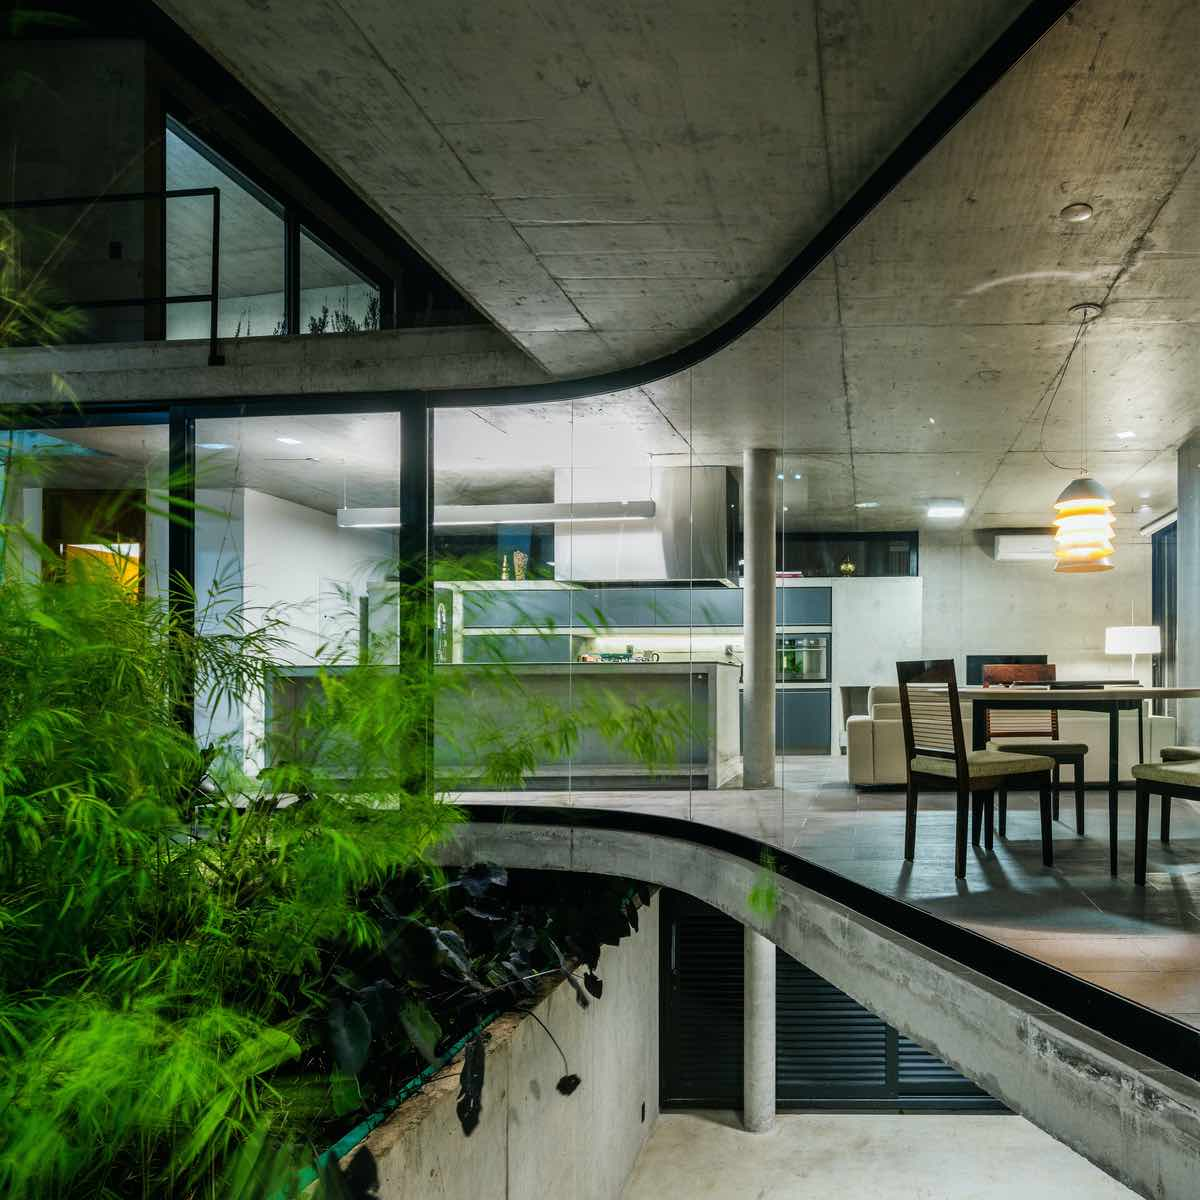 curved concrete structure